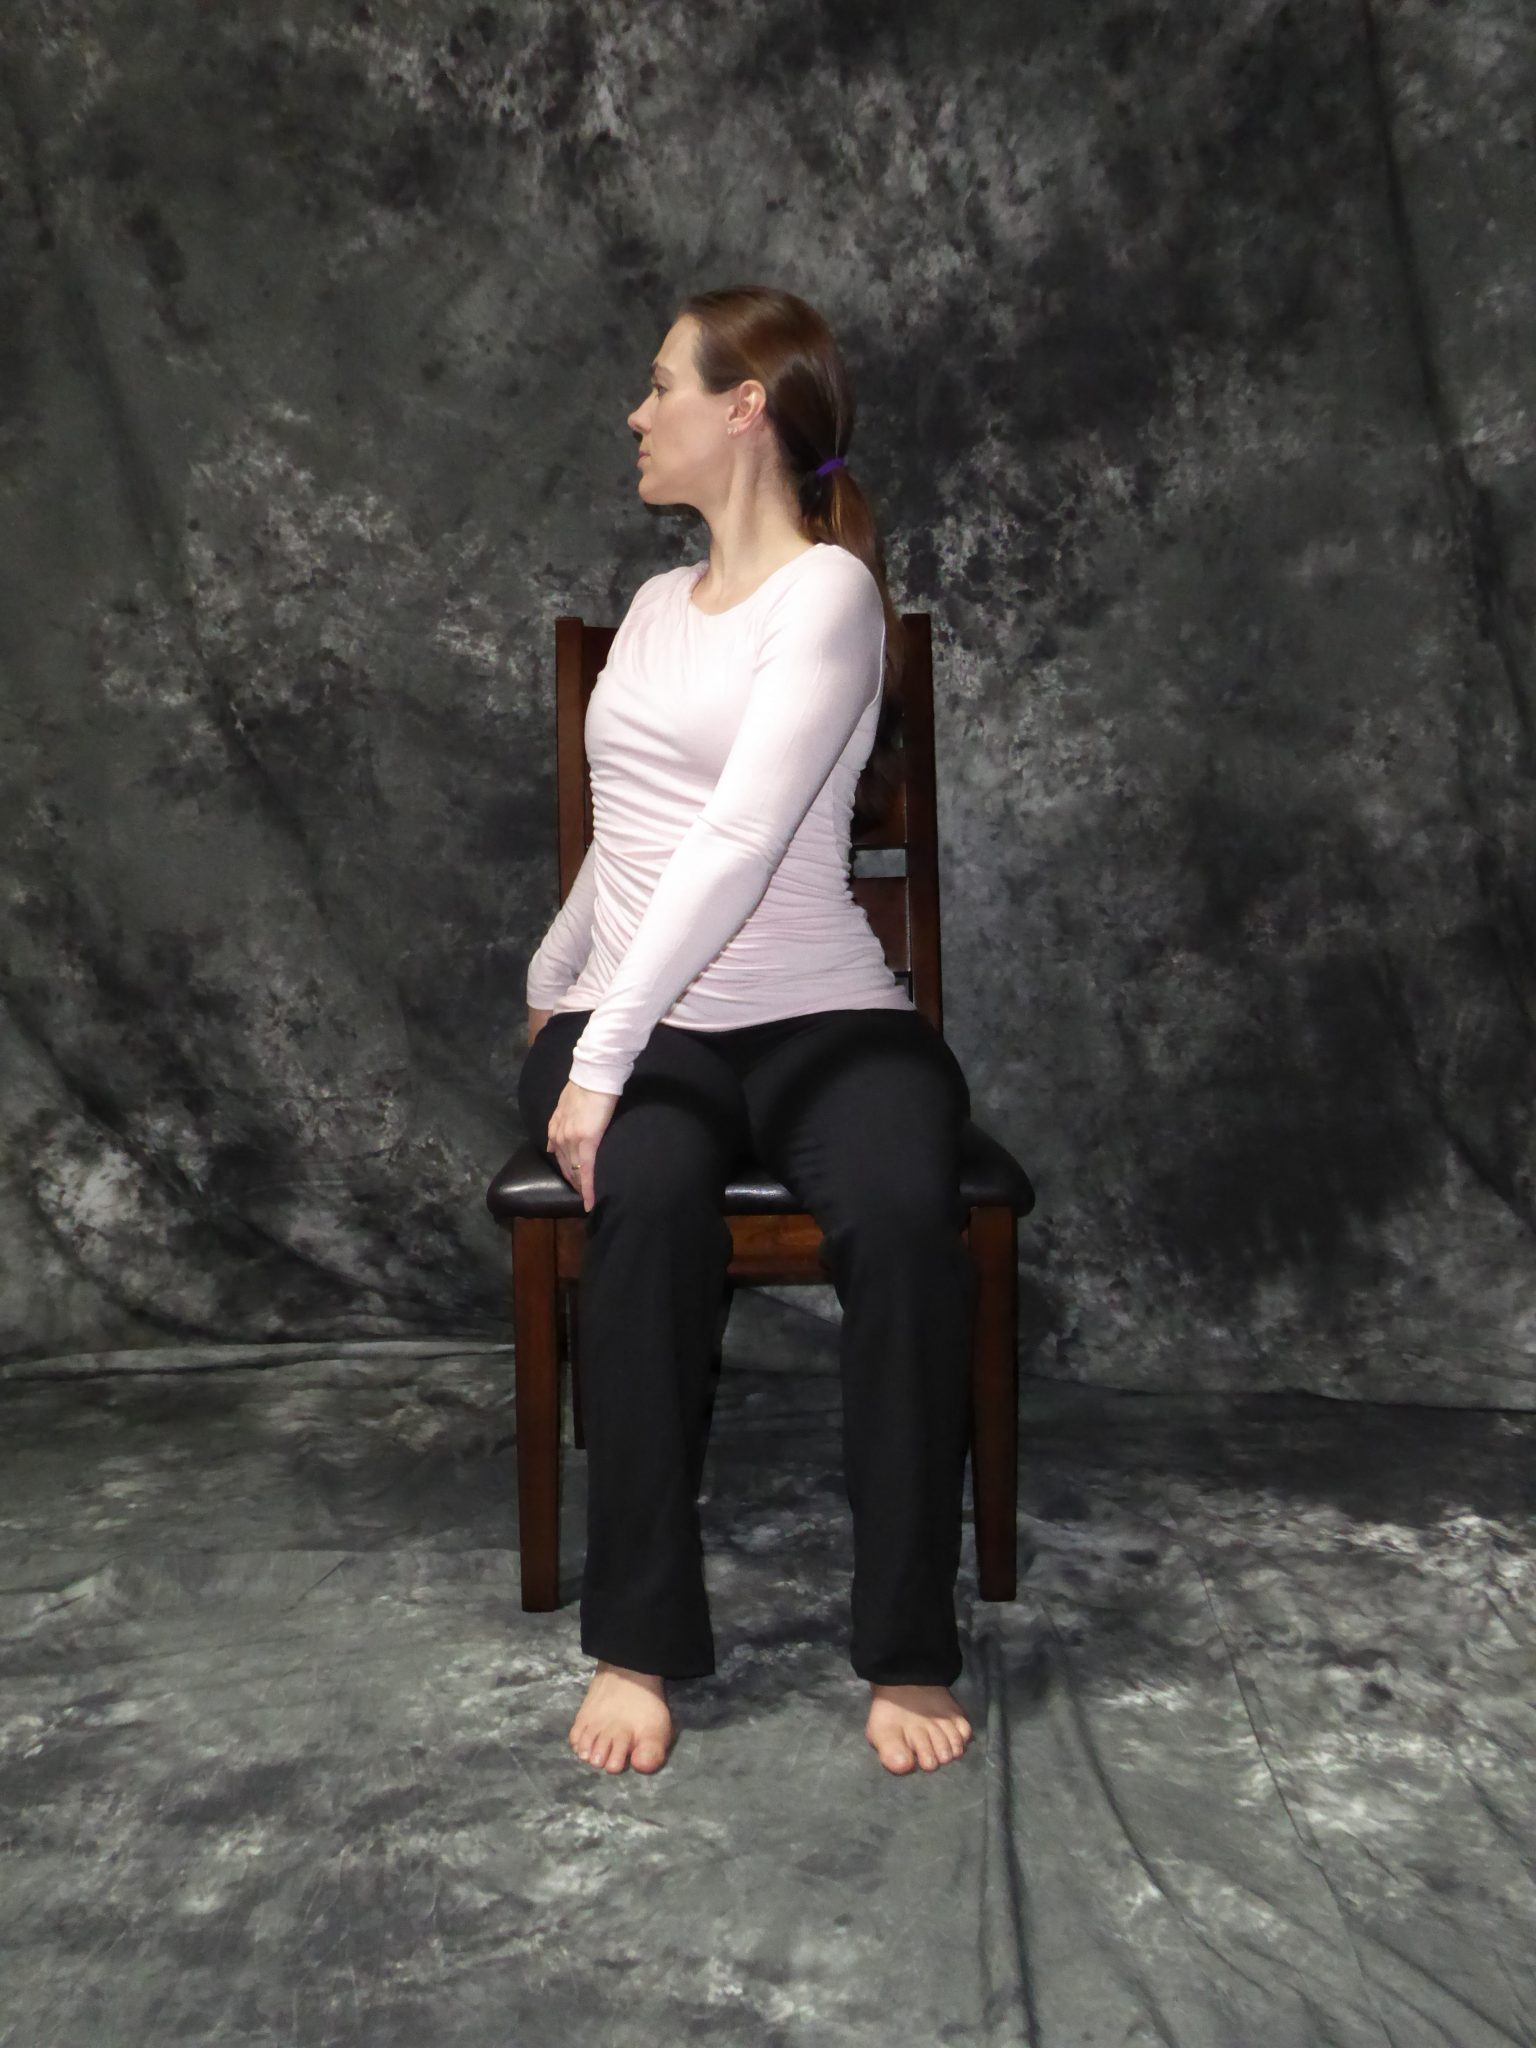 Chair Yoga Twist k bonura